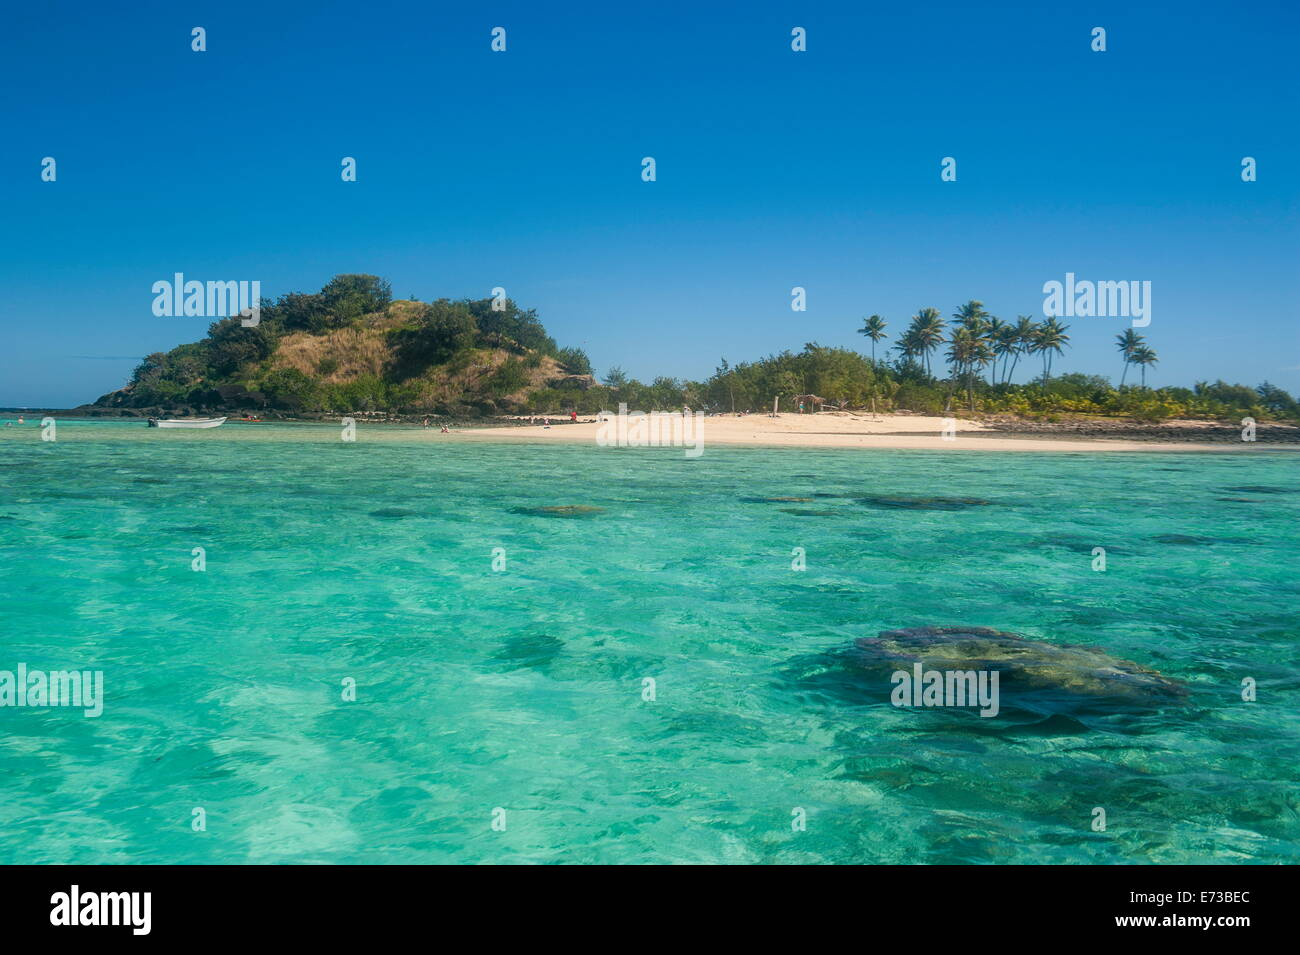 The turquoise waters of the blue lagoon, Yasawas, Fiji, South Pacific, Pacific - Stock Image